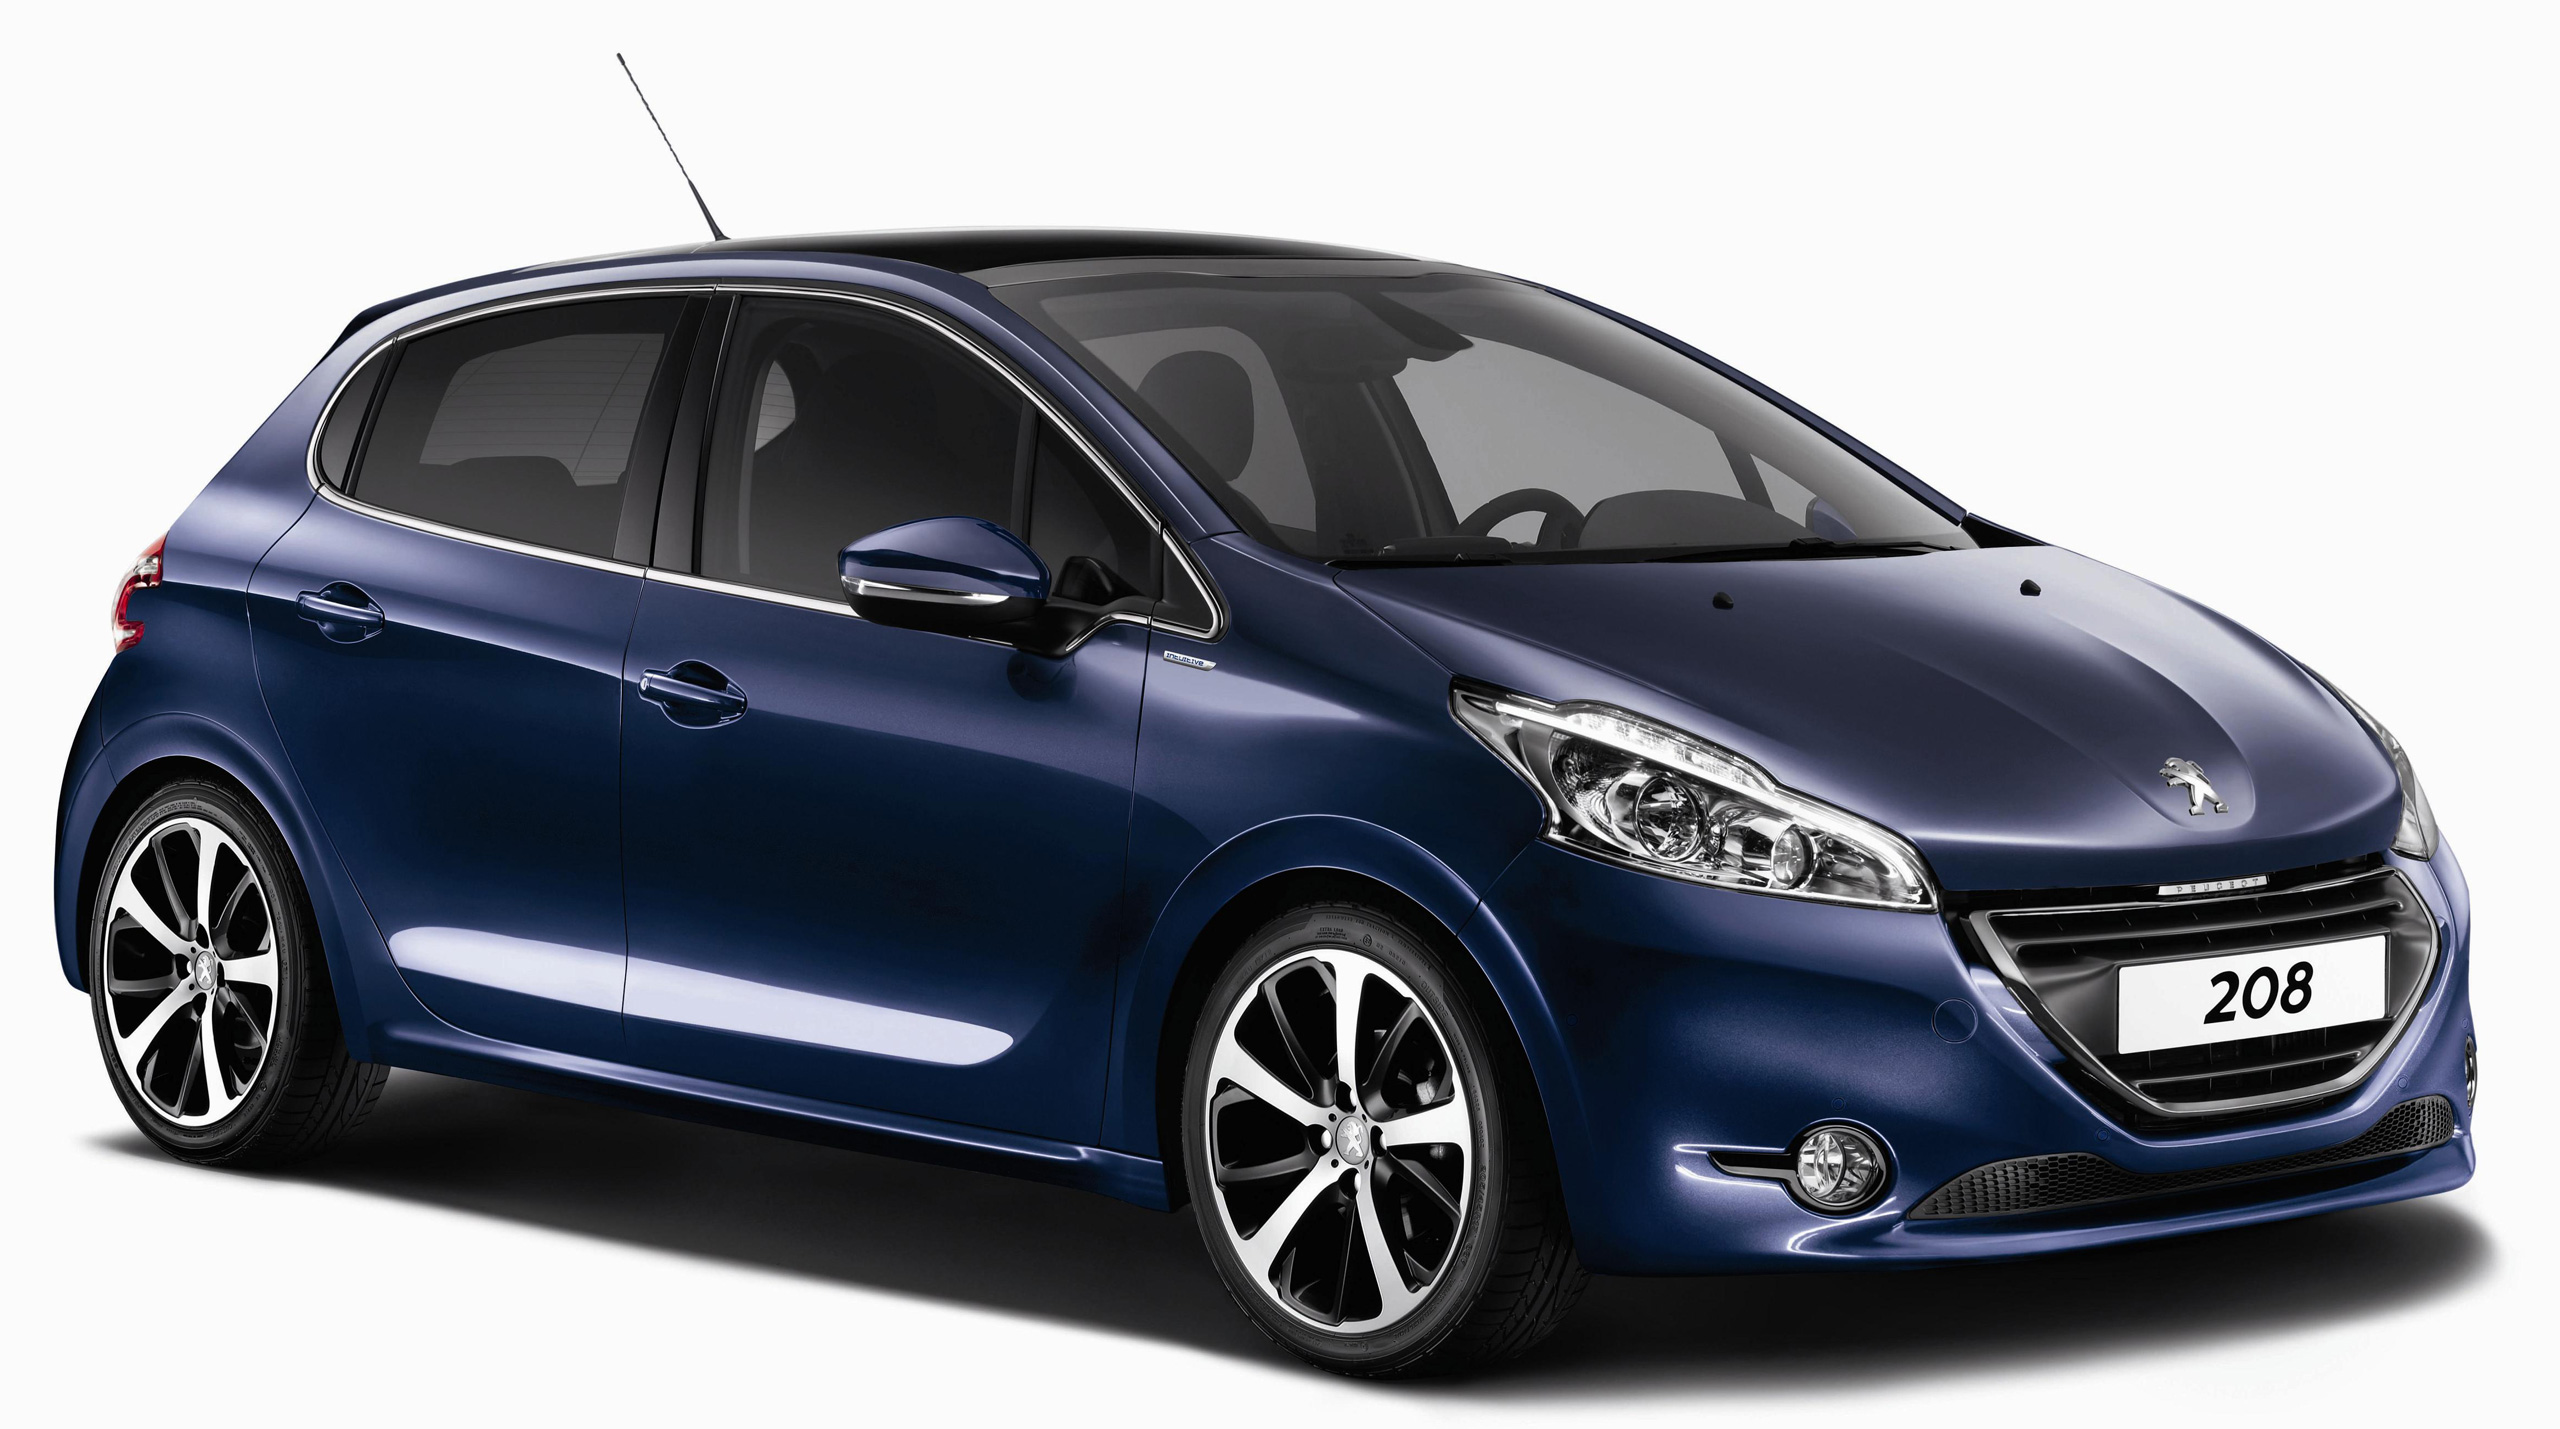 New Peugeot 208 2018 >> New Peugeot 208 all set for mid-April Malaysian launch Paul Tan - Image 164655